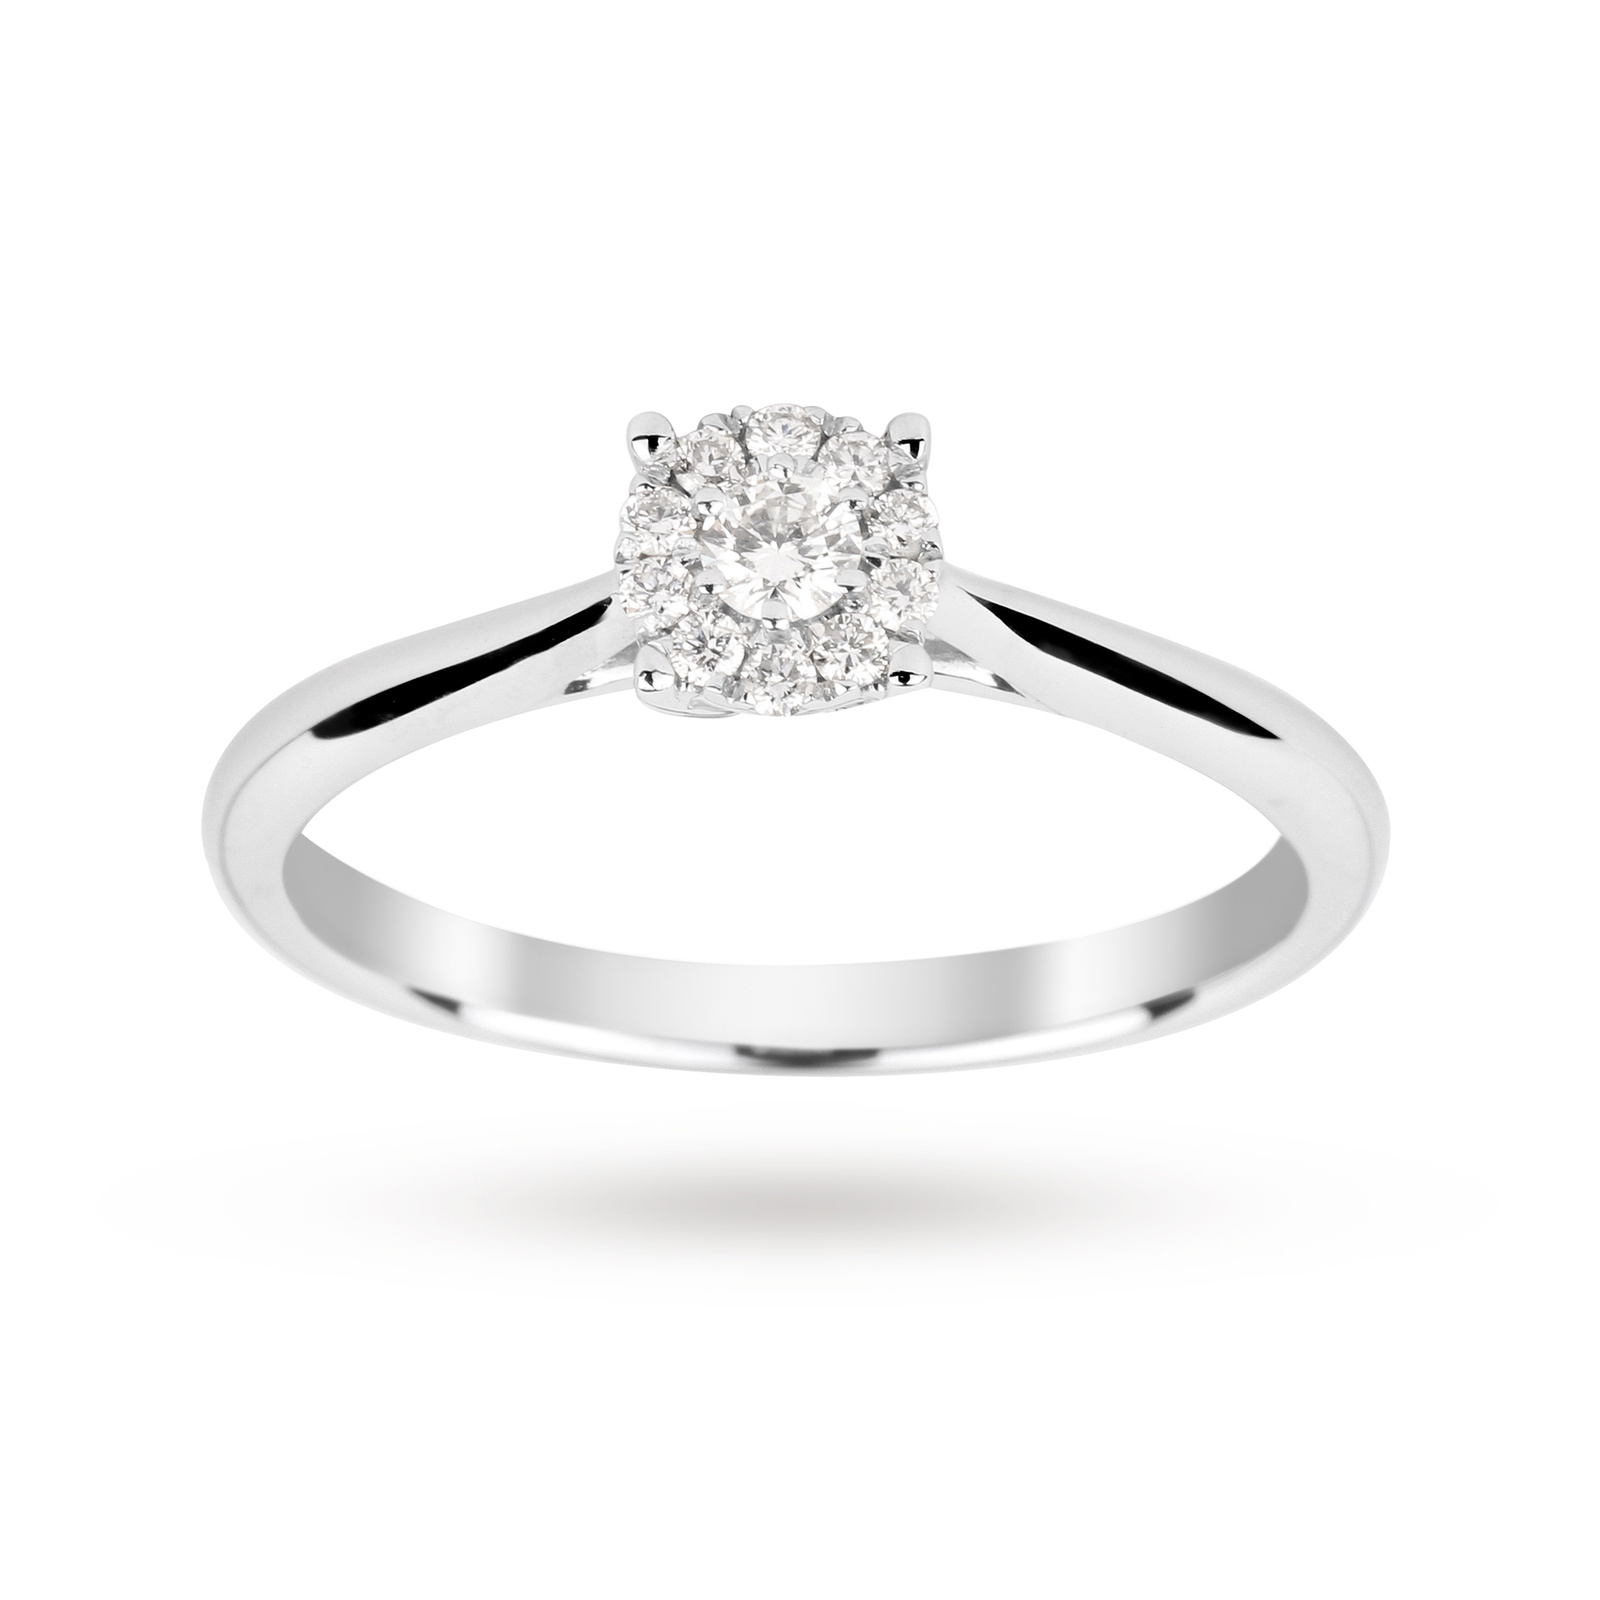 Brilliant Cut 015 Carat Solitaire Diamond Ring In 9 White Gold